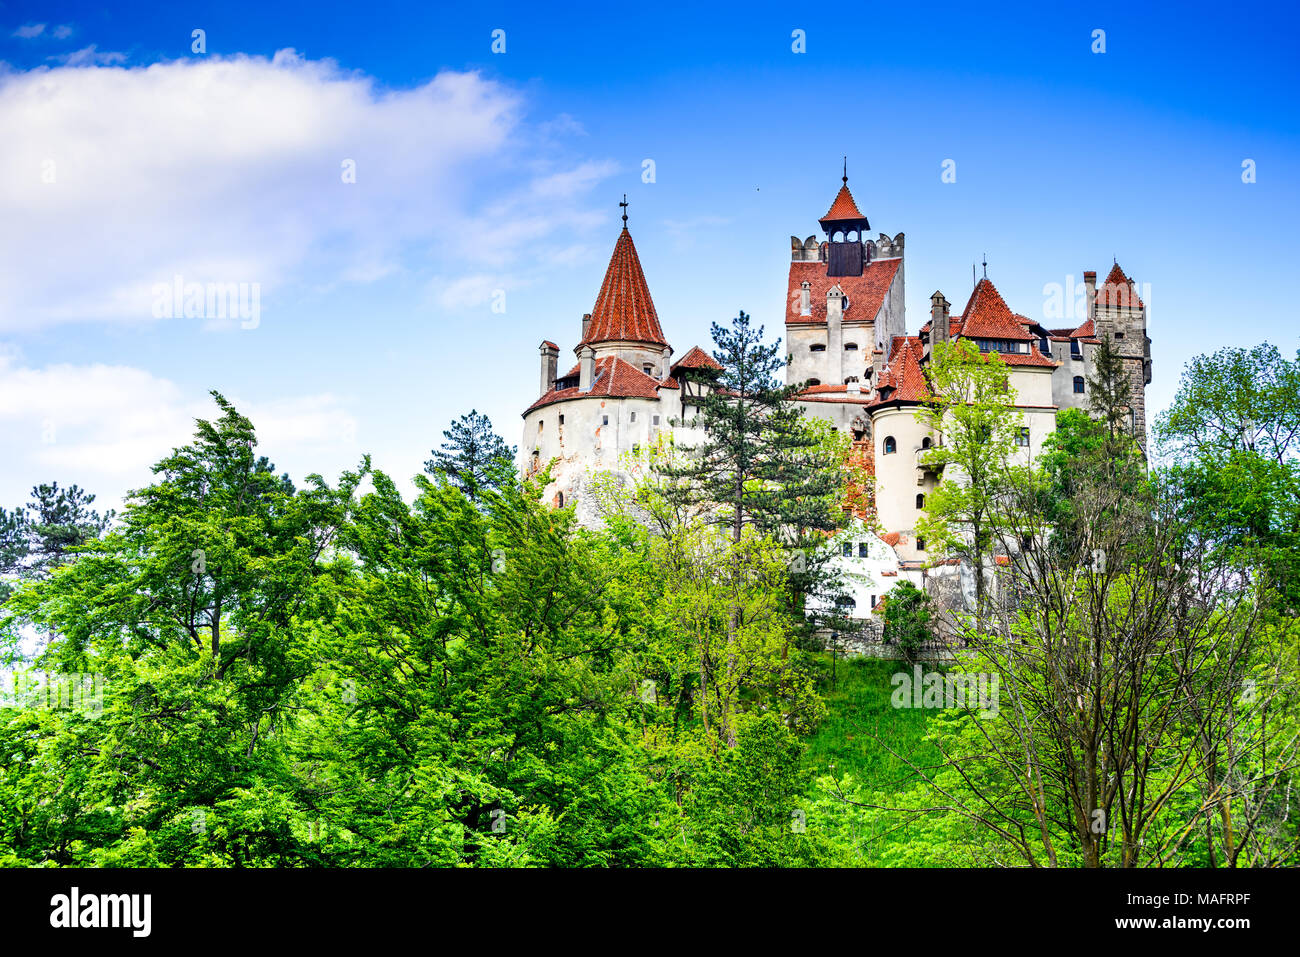 Bran Castle, Romania. Stunning spring image of Dracula Castle in Brasov, Transylvania, Eastern Europe. - Stock Image